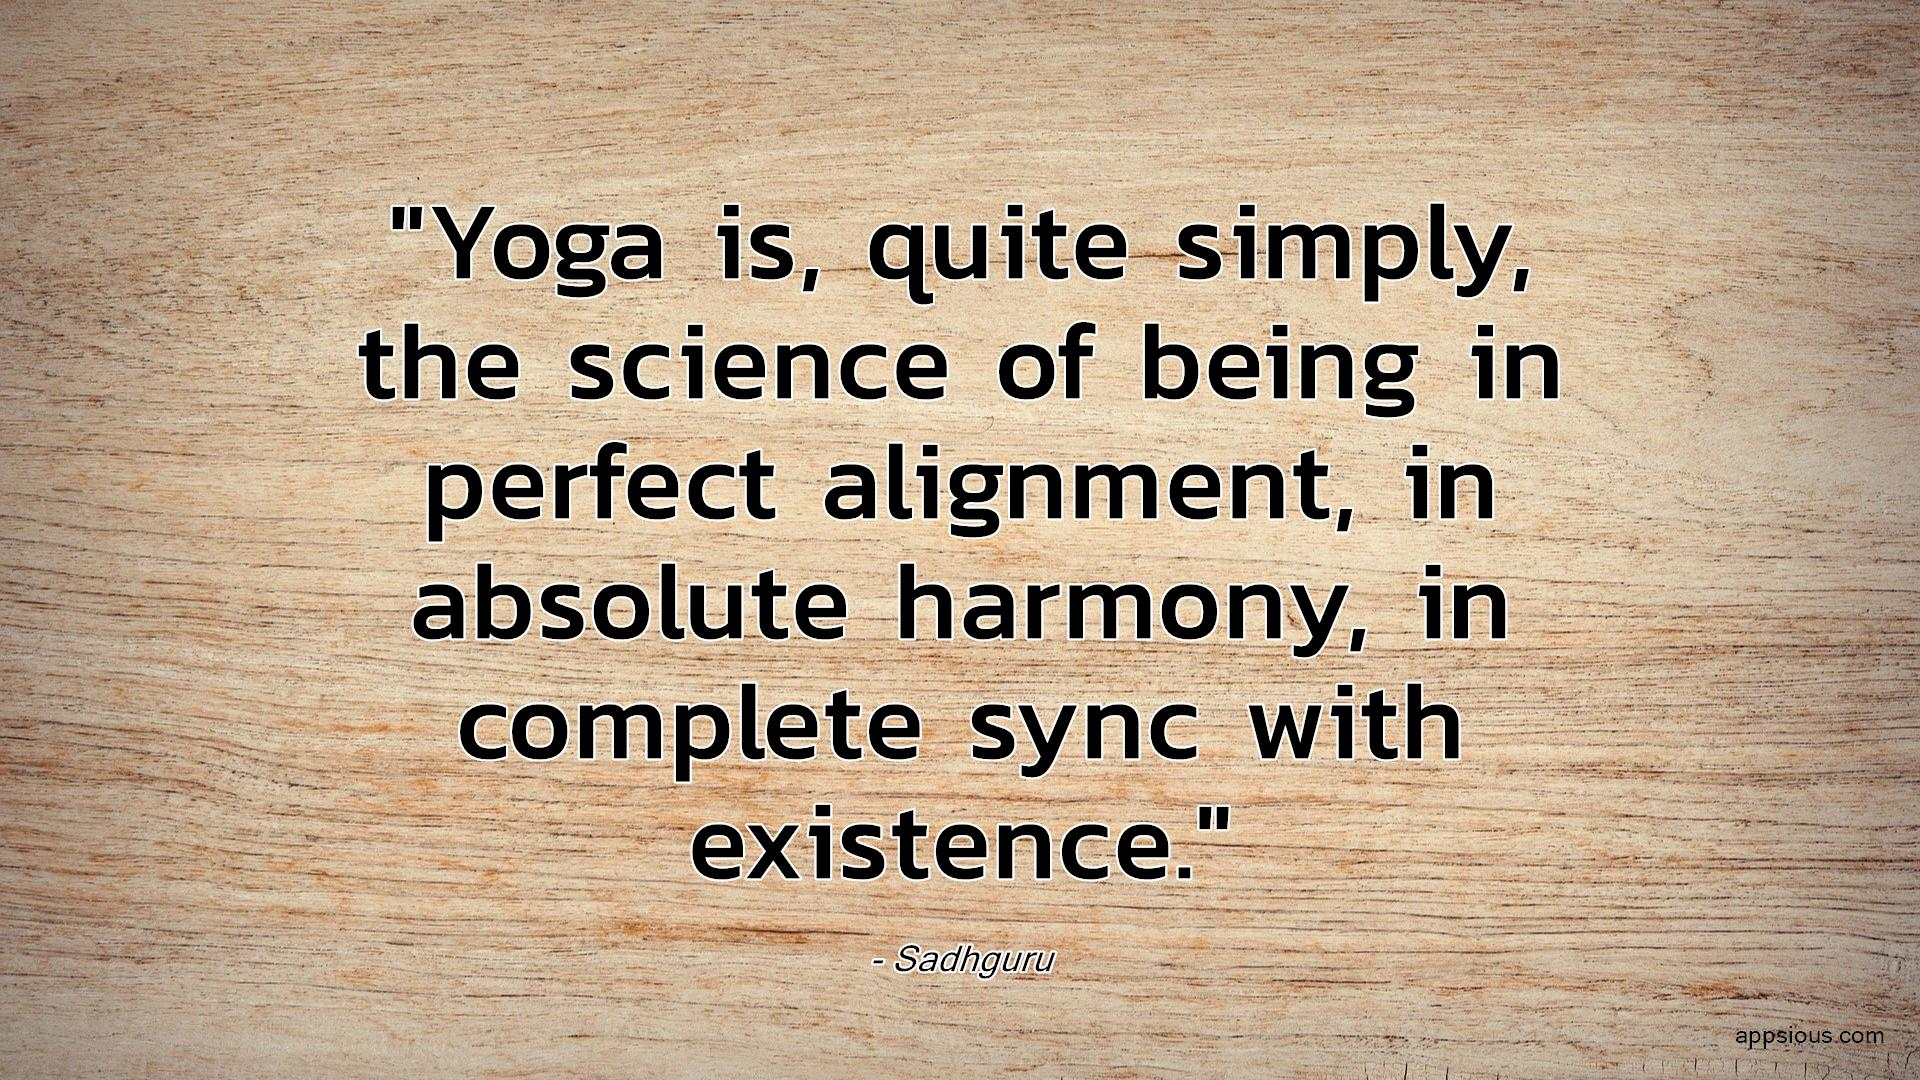 Yoga is, quite simply, the science of being in perfect alignment, in absolute harmony, in complete sync with existence.